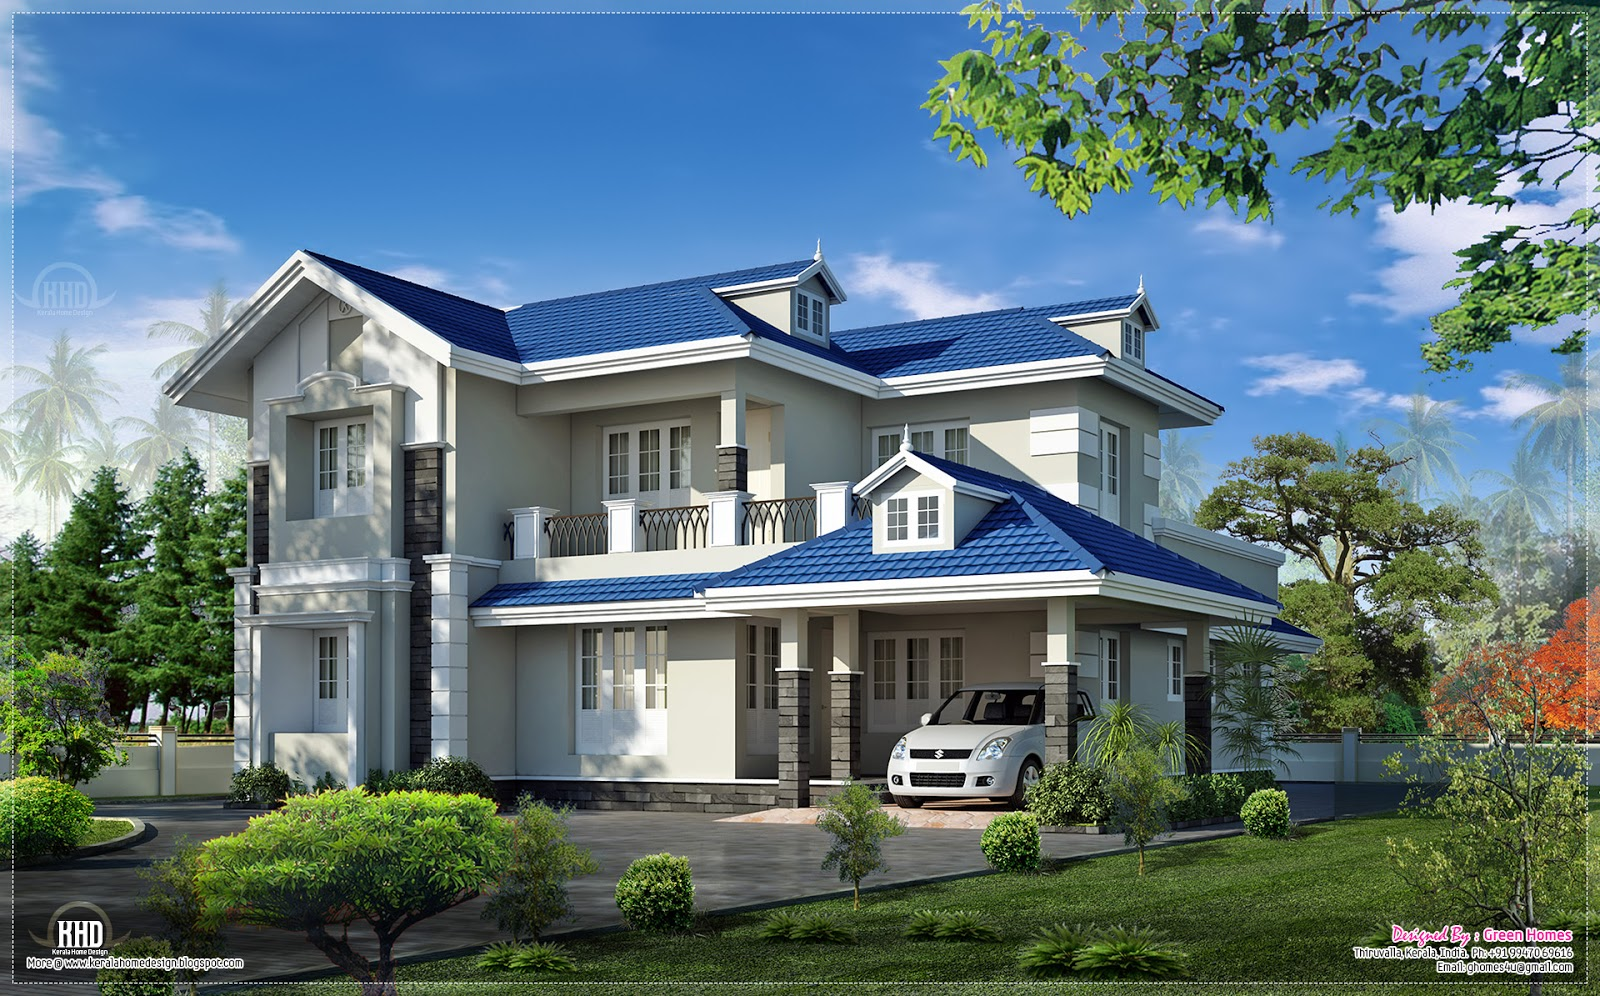 Beautiful 4 bedroom villa exterior kerala home design for Beautiful house images